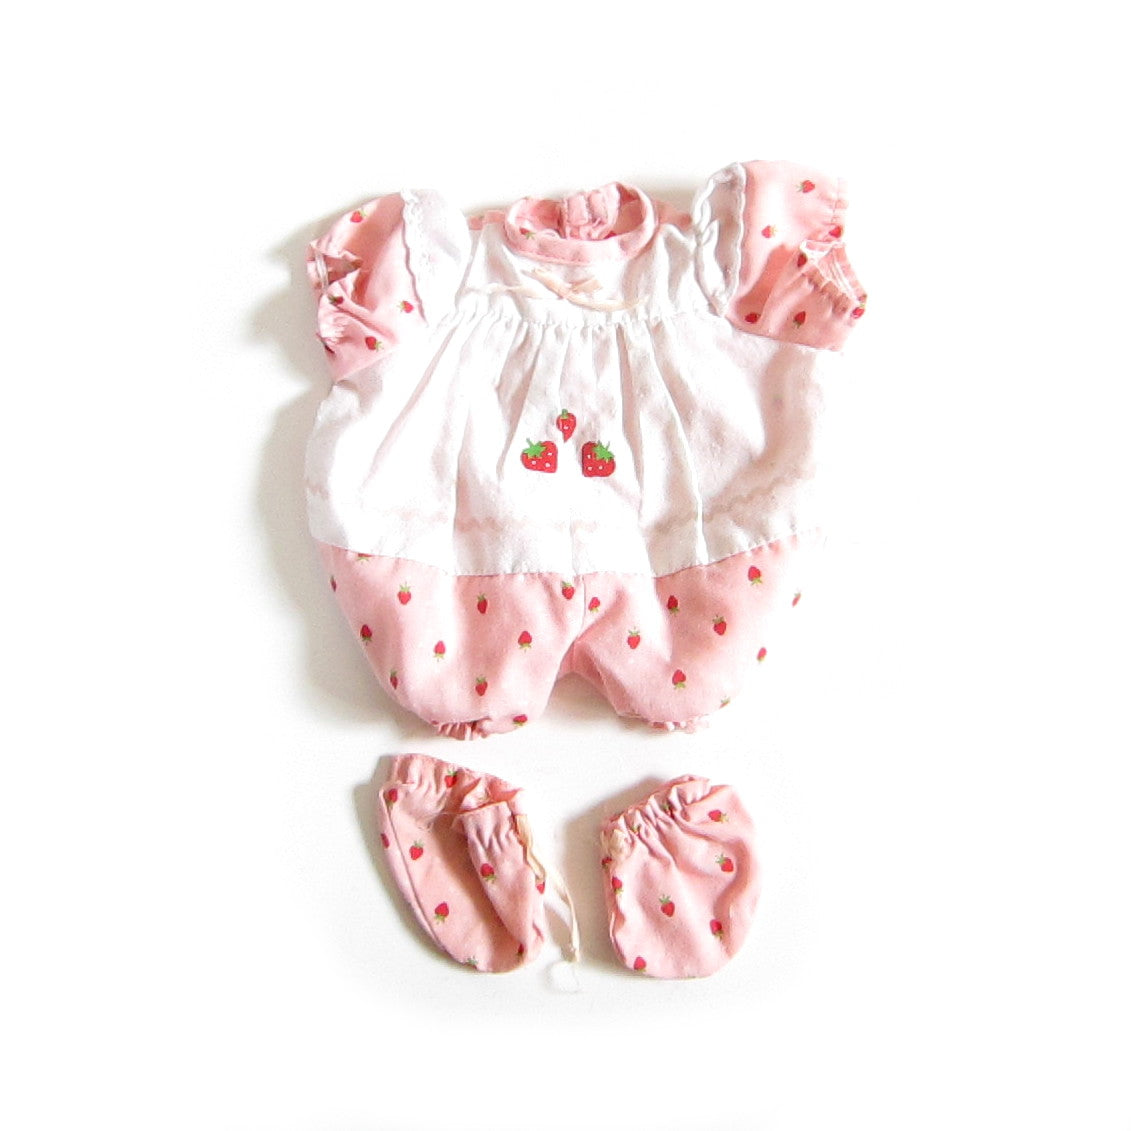 Strawberry Shortcake Baby Blow Kiss outfit and booties